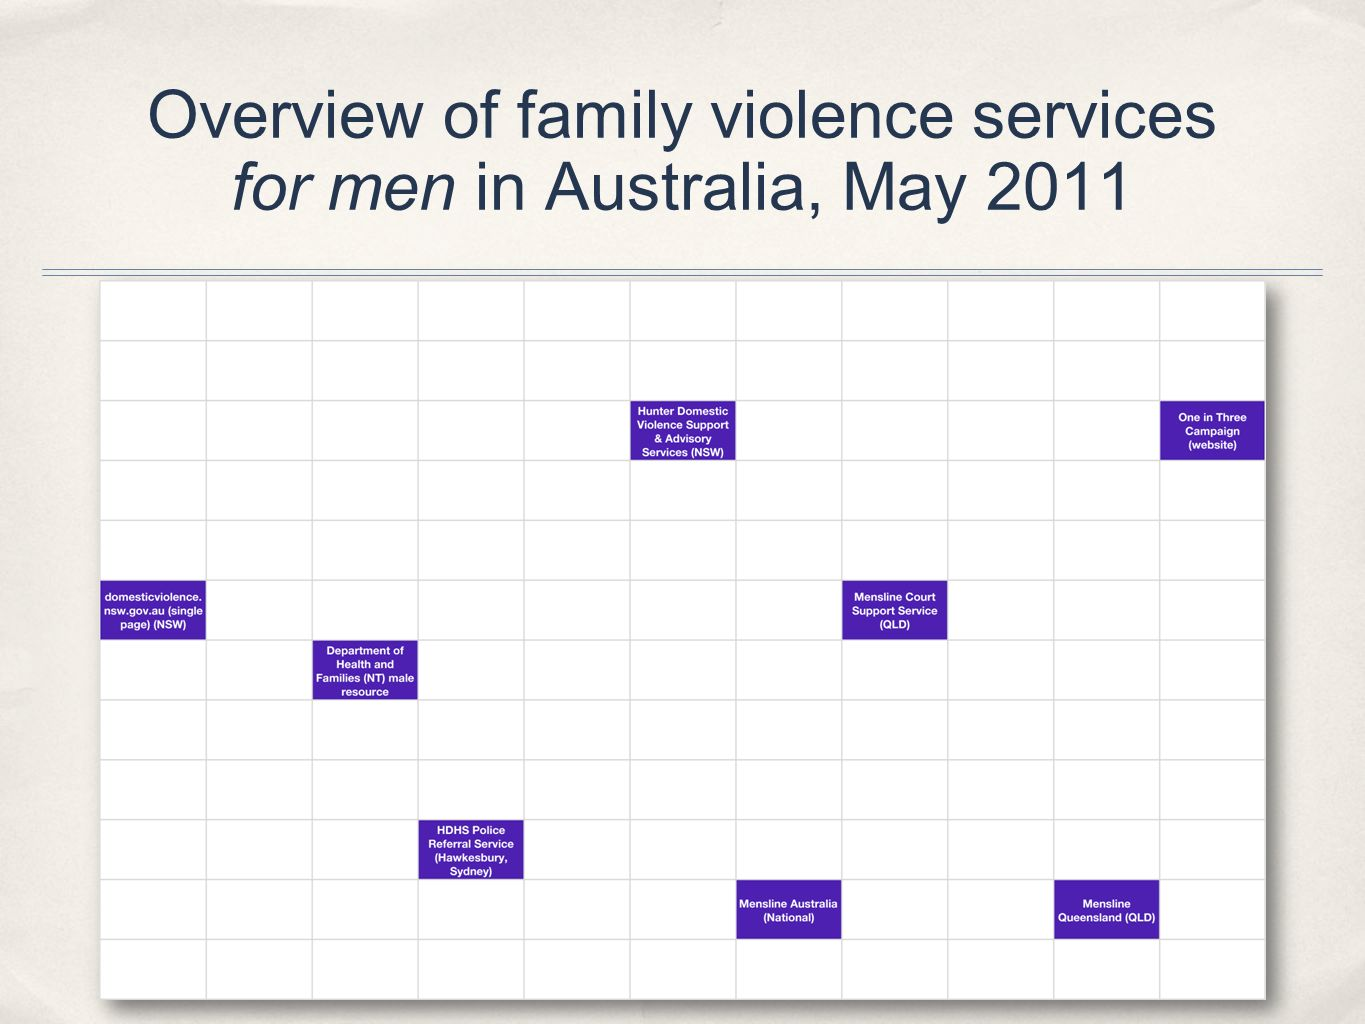 Overview of family violence services for men in Australia, May 2011